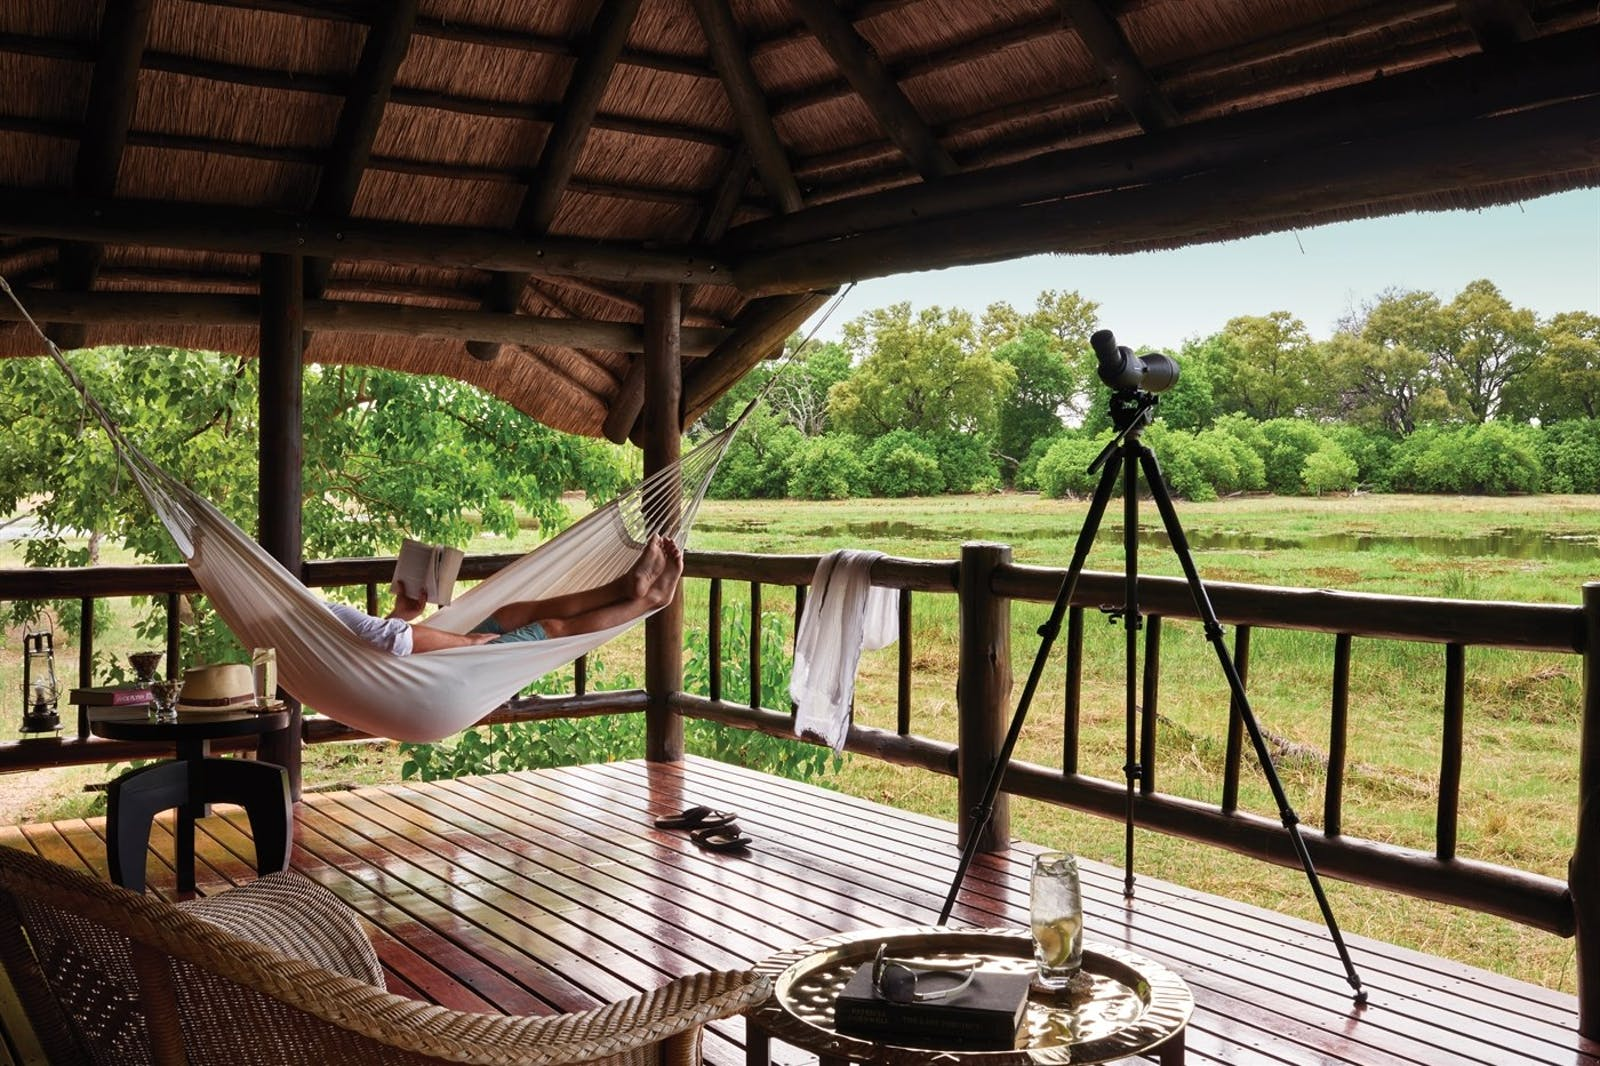 Hammock on terrace at Khwai River Lodge, A Belmond Safari, Botswana